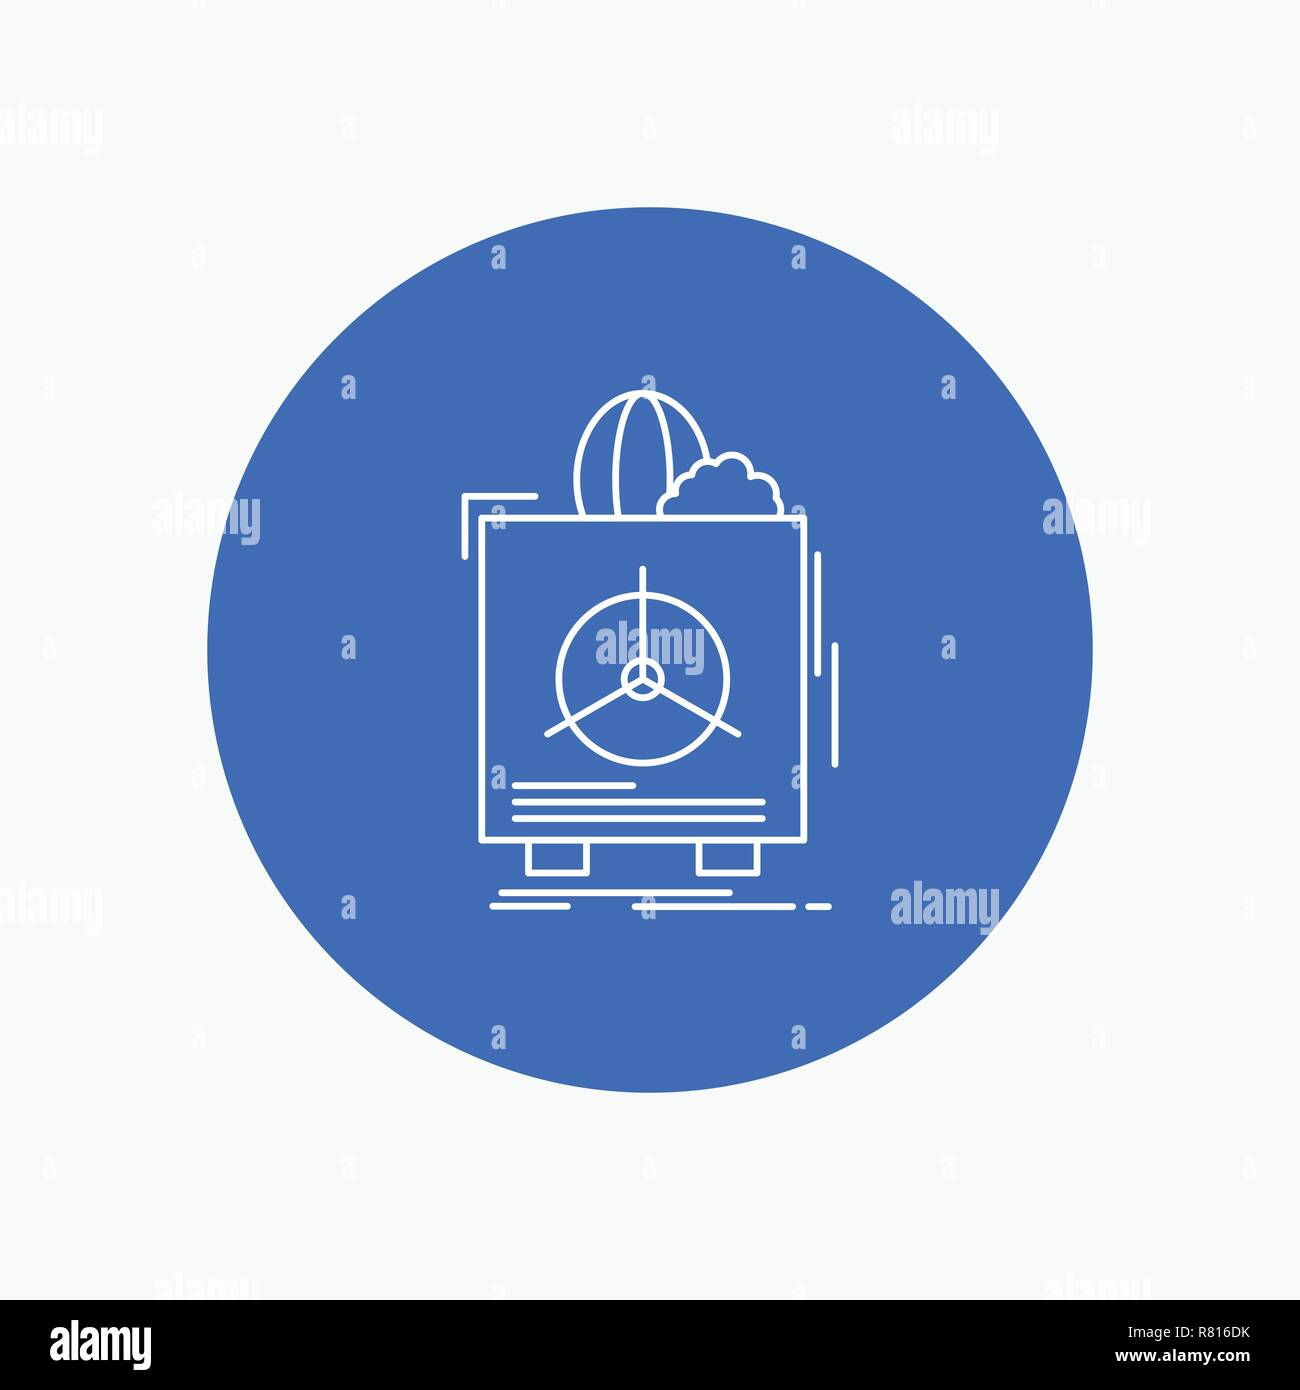 insurance, Fragile, product, warranty, health White Line Icon in Circle background. vector icon illustration - Stock Vector